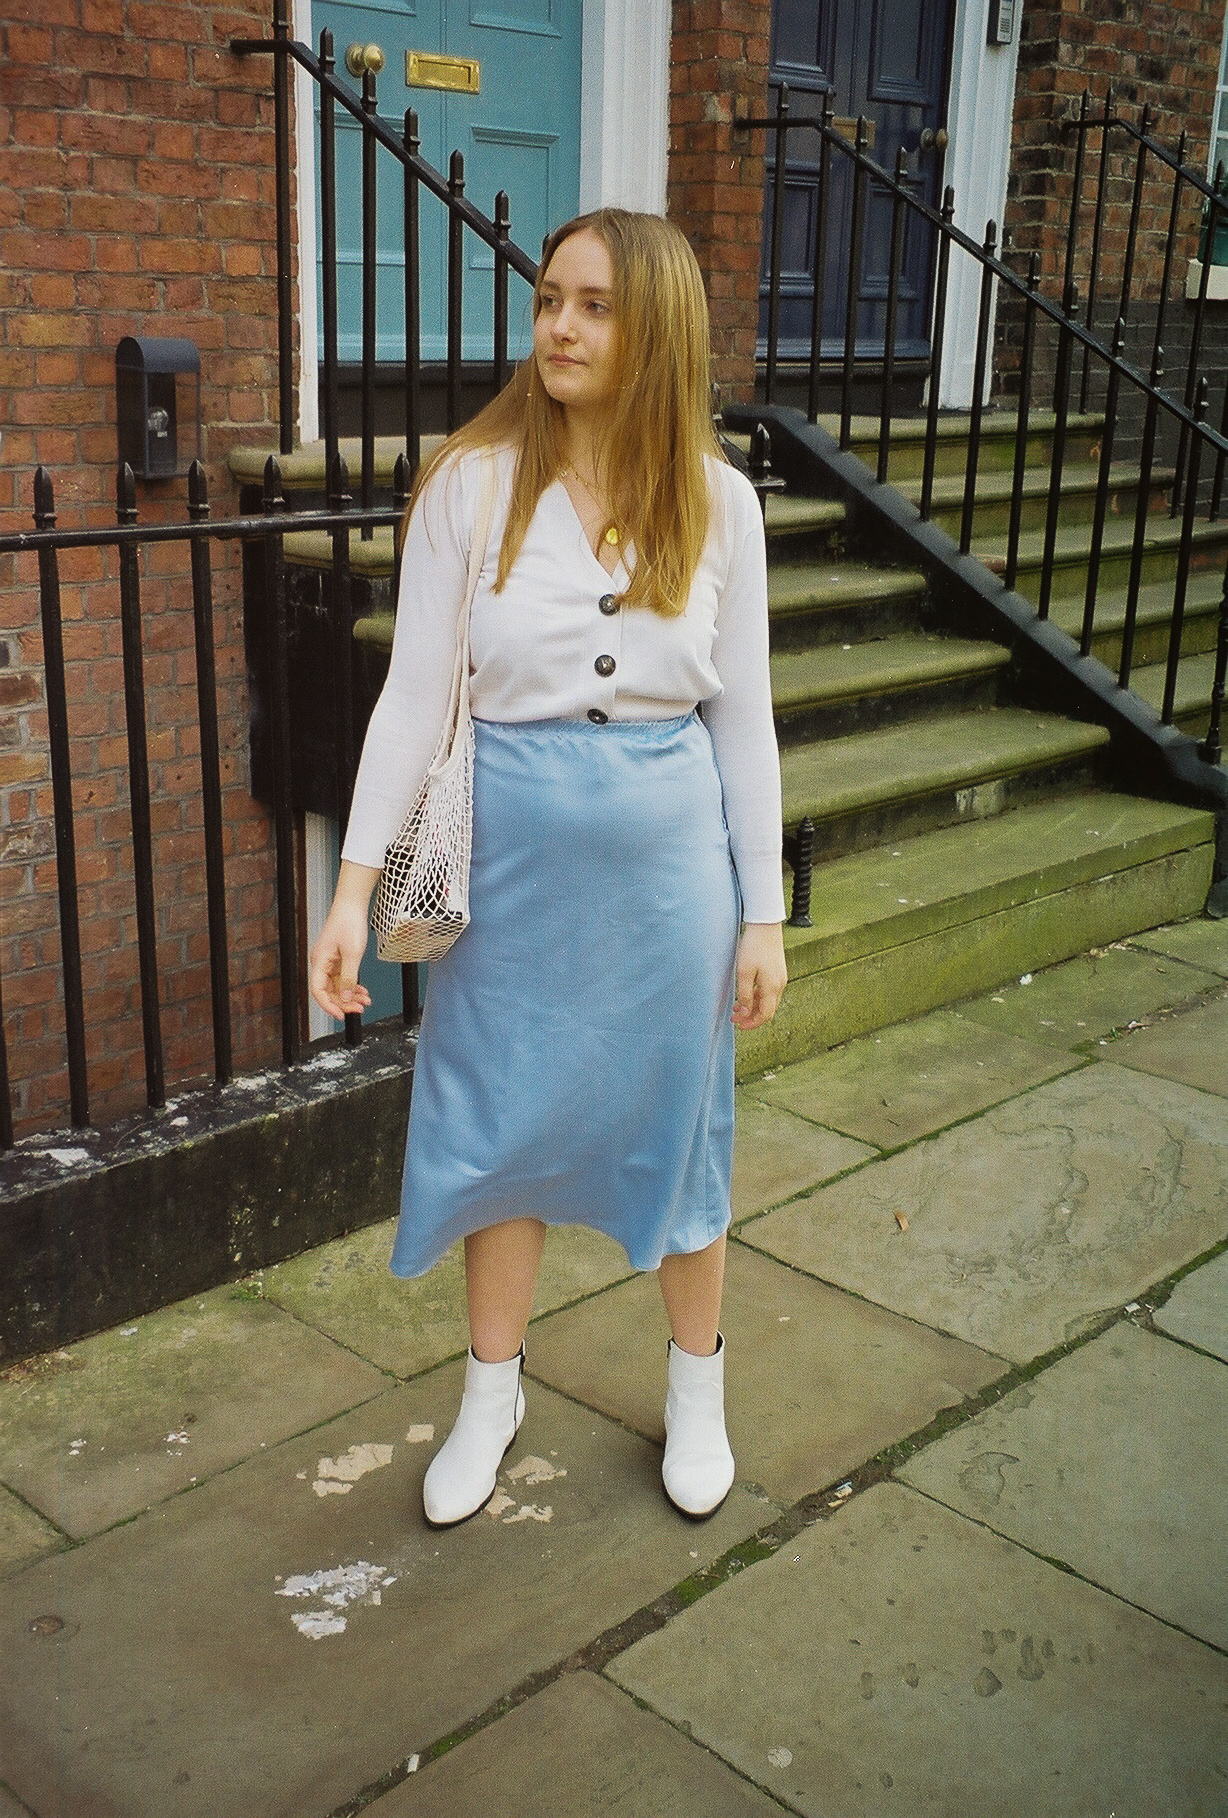 Some links used in this post are affiliate links which means I earn a small amount of commission if you purchase an item.  Top-  Zara   Skirt-  Melmantt   Shoes- Primark (similar  here  and  here )